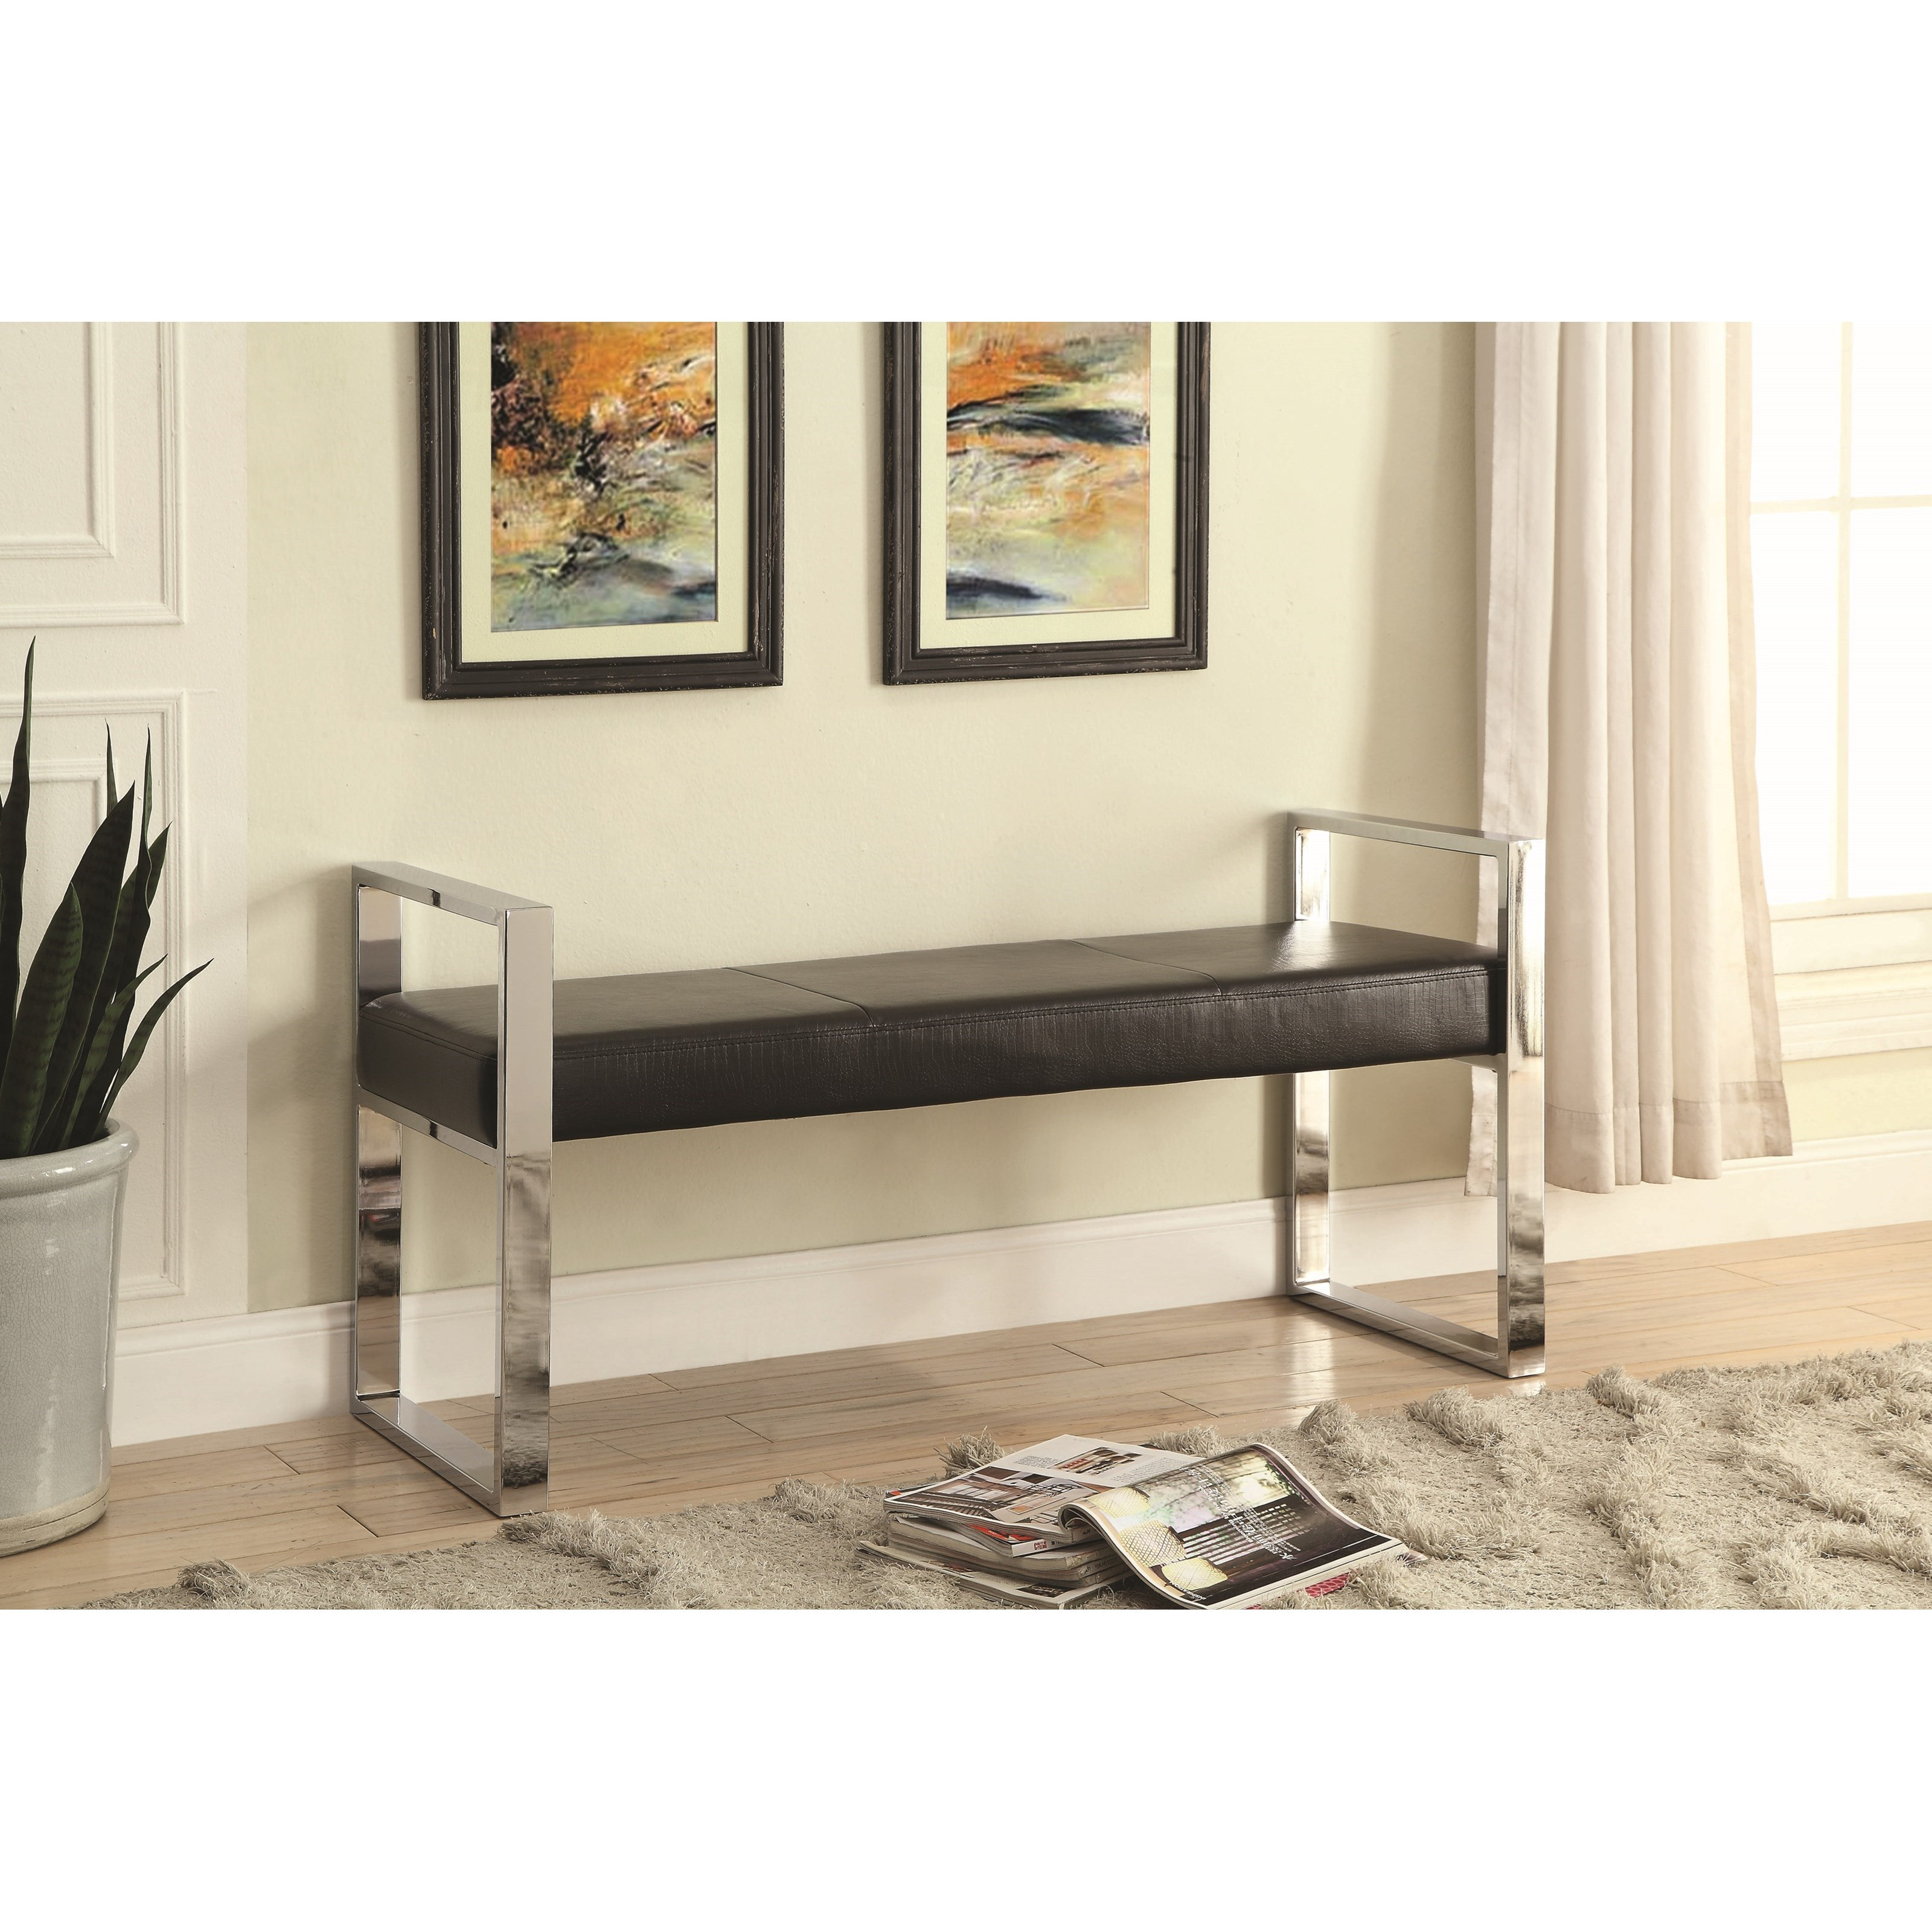 Coaster Benches Bench - Item Number: 500433